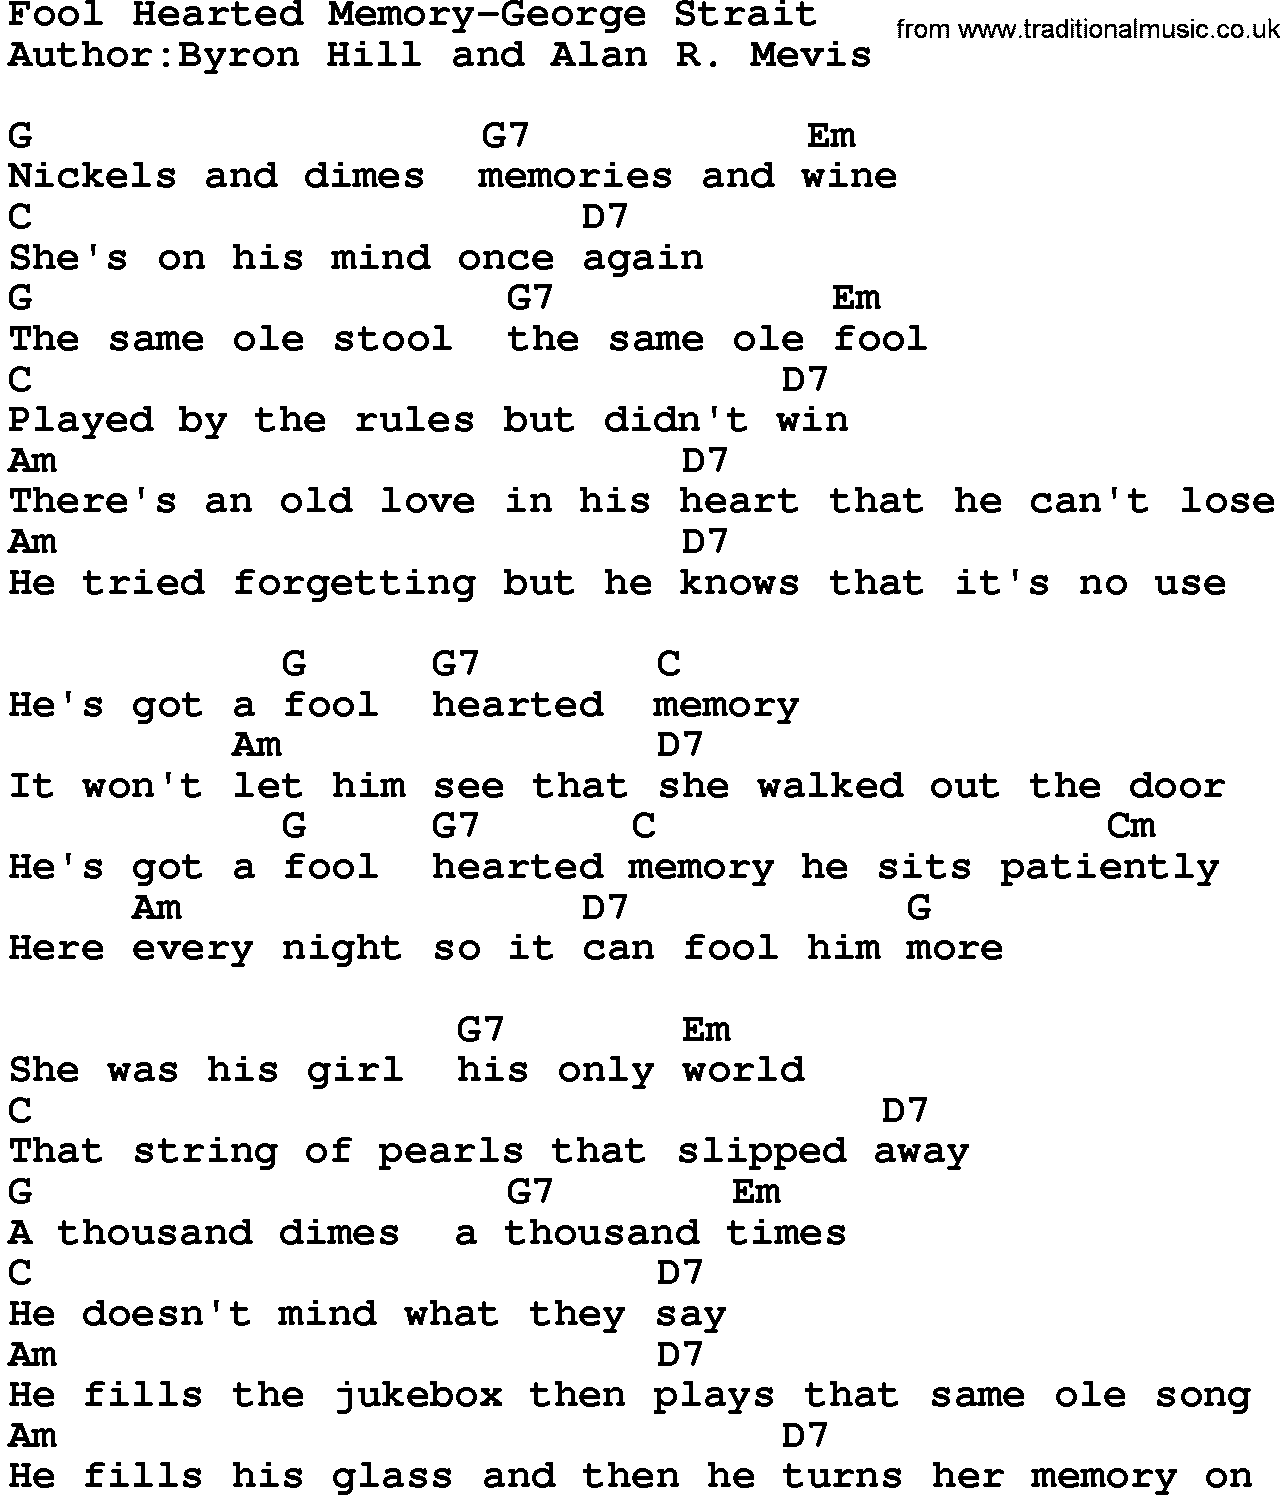 Country musicfool hearted memory george strait lyrics and chords hexwebz Choice Image